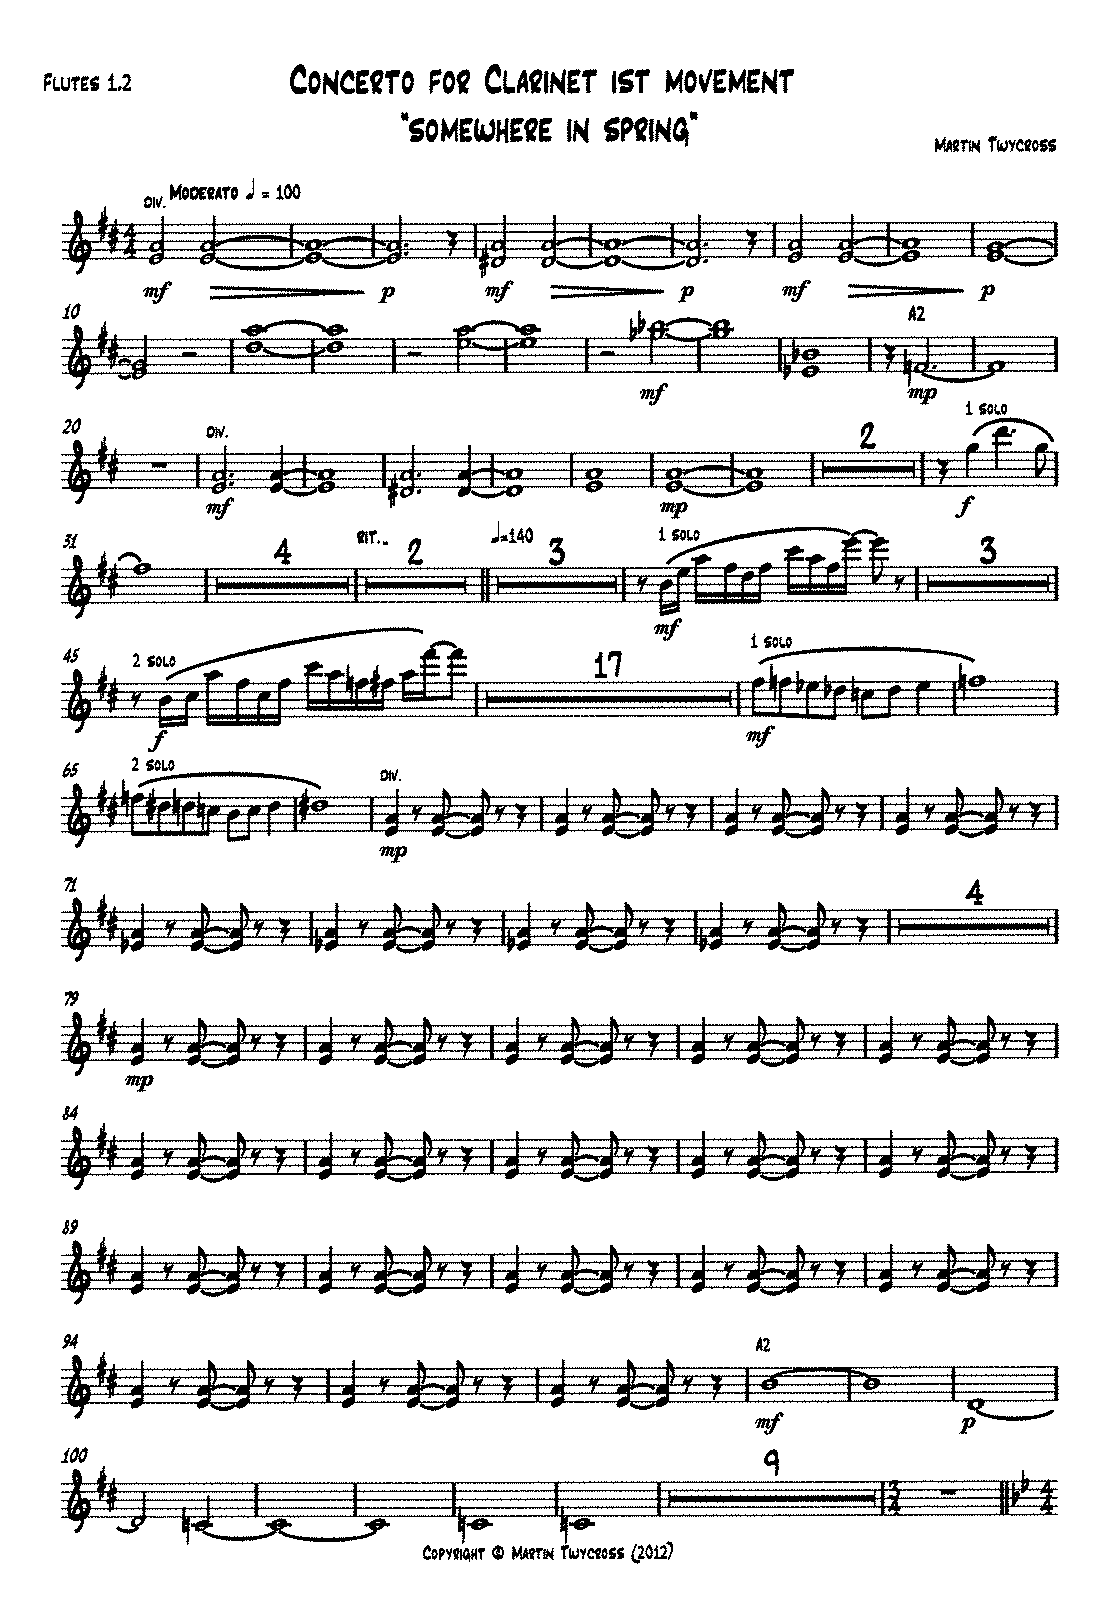 PMLP326380-Concert for clarinet Ist mov (parts).pdf